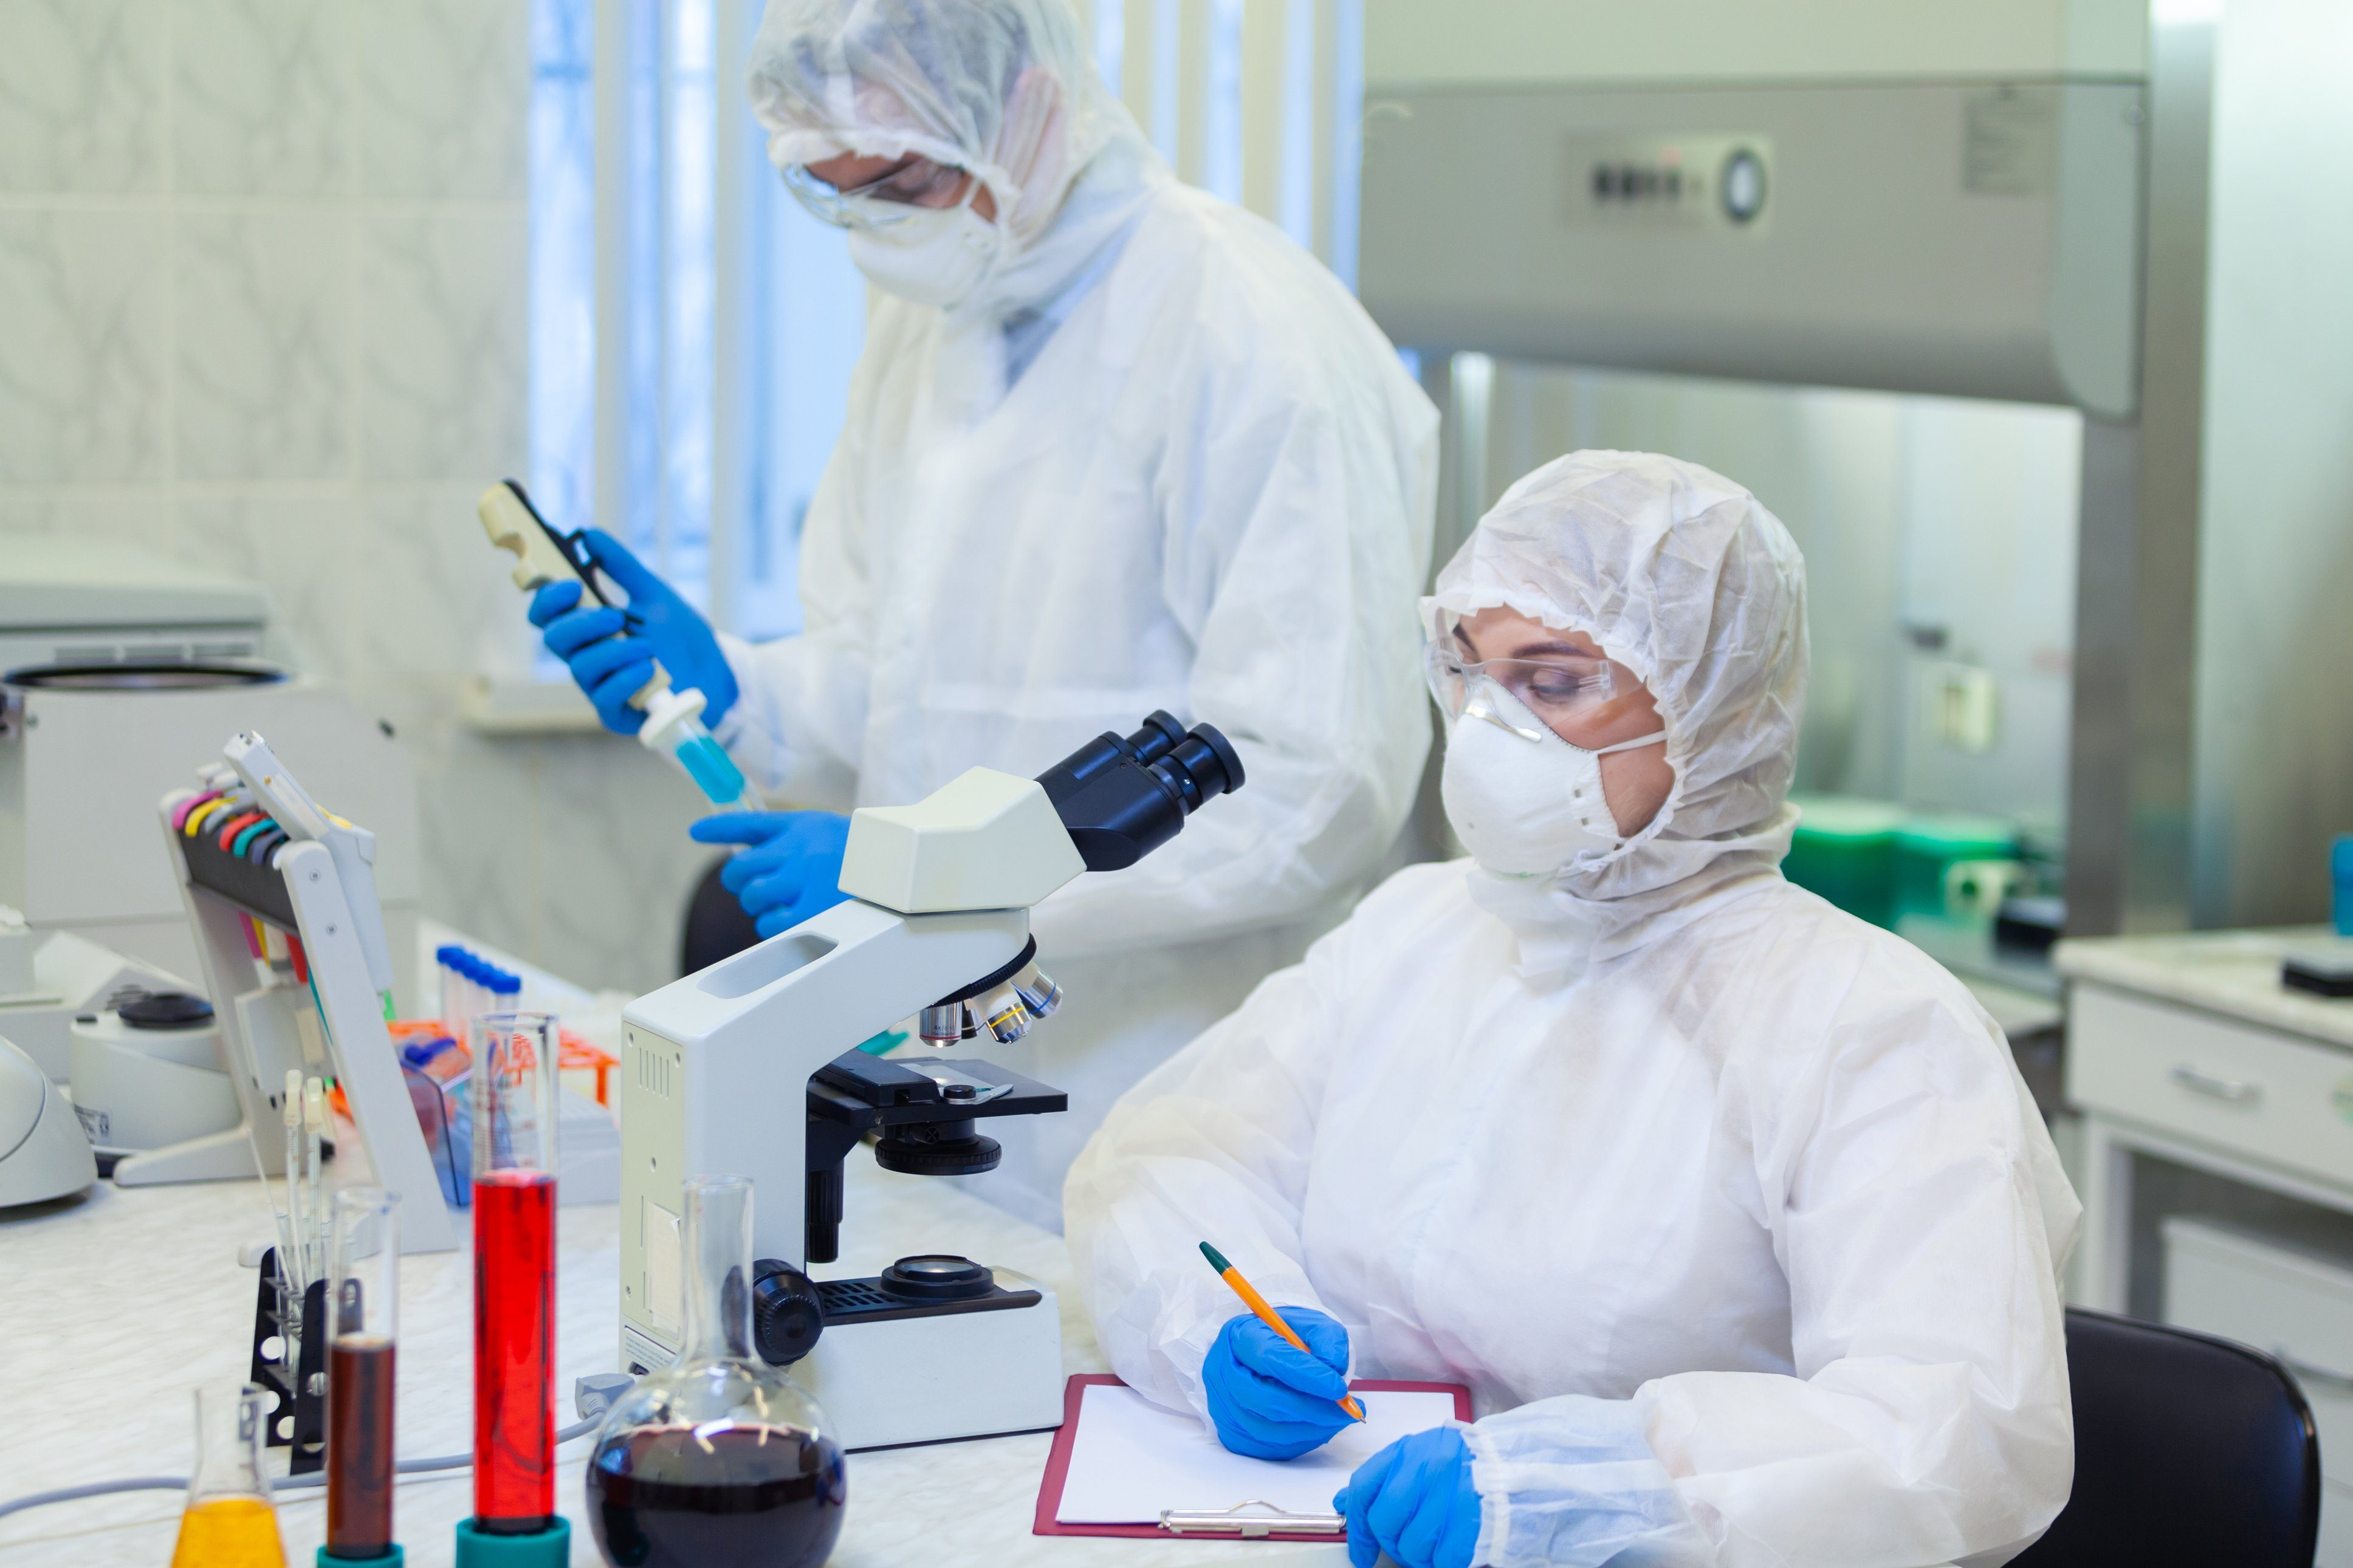 Scientists in protective suits in a science laboratory study a dangerous virus to eliminate the epidemic